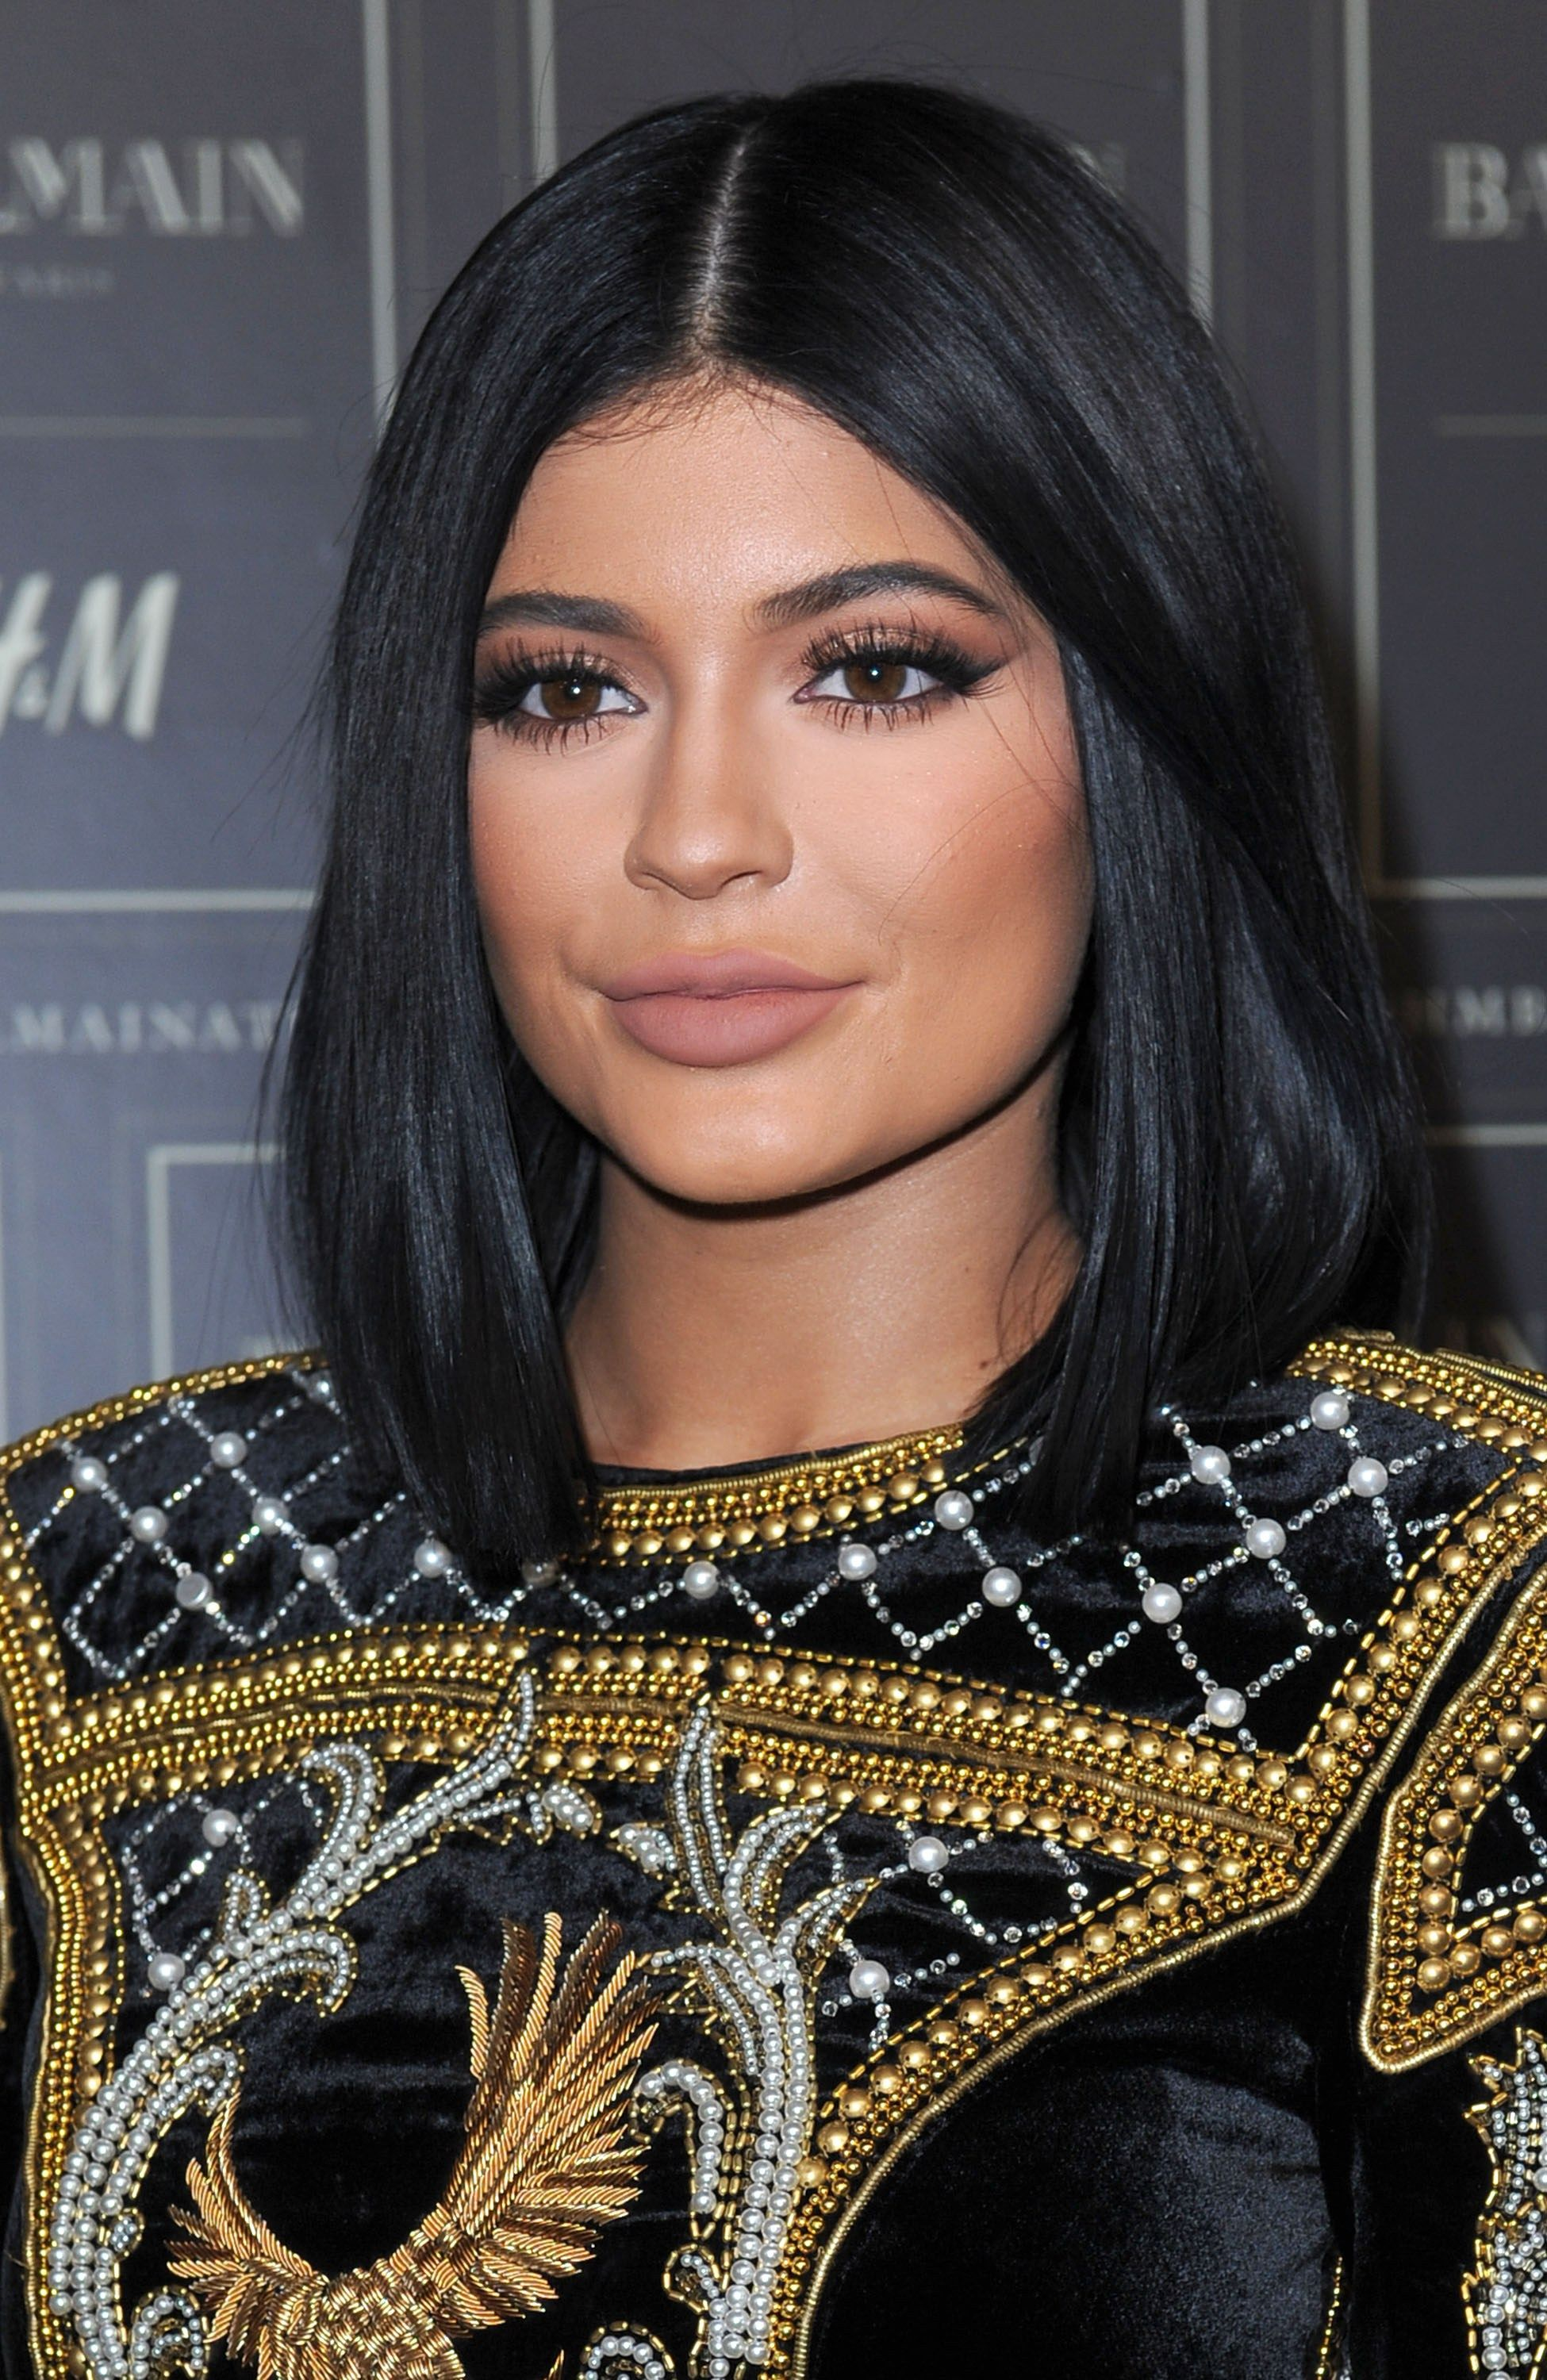 Kylie Jenner's Blending Trick for a Soft, Purple Smokyeye